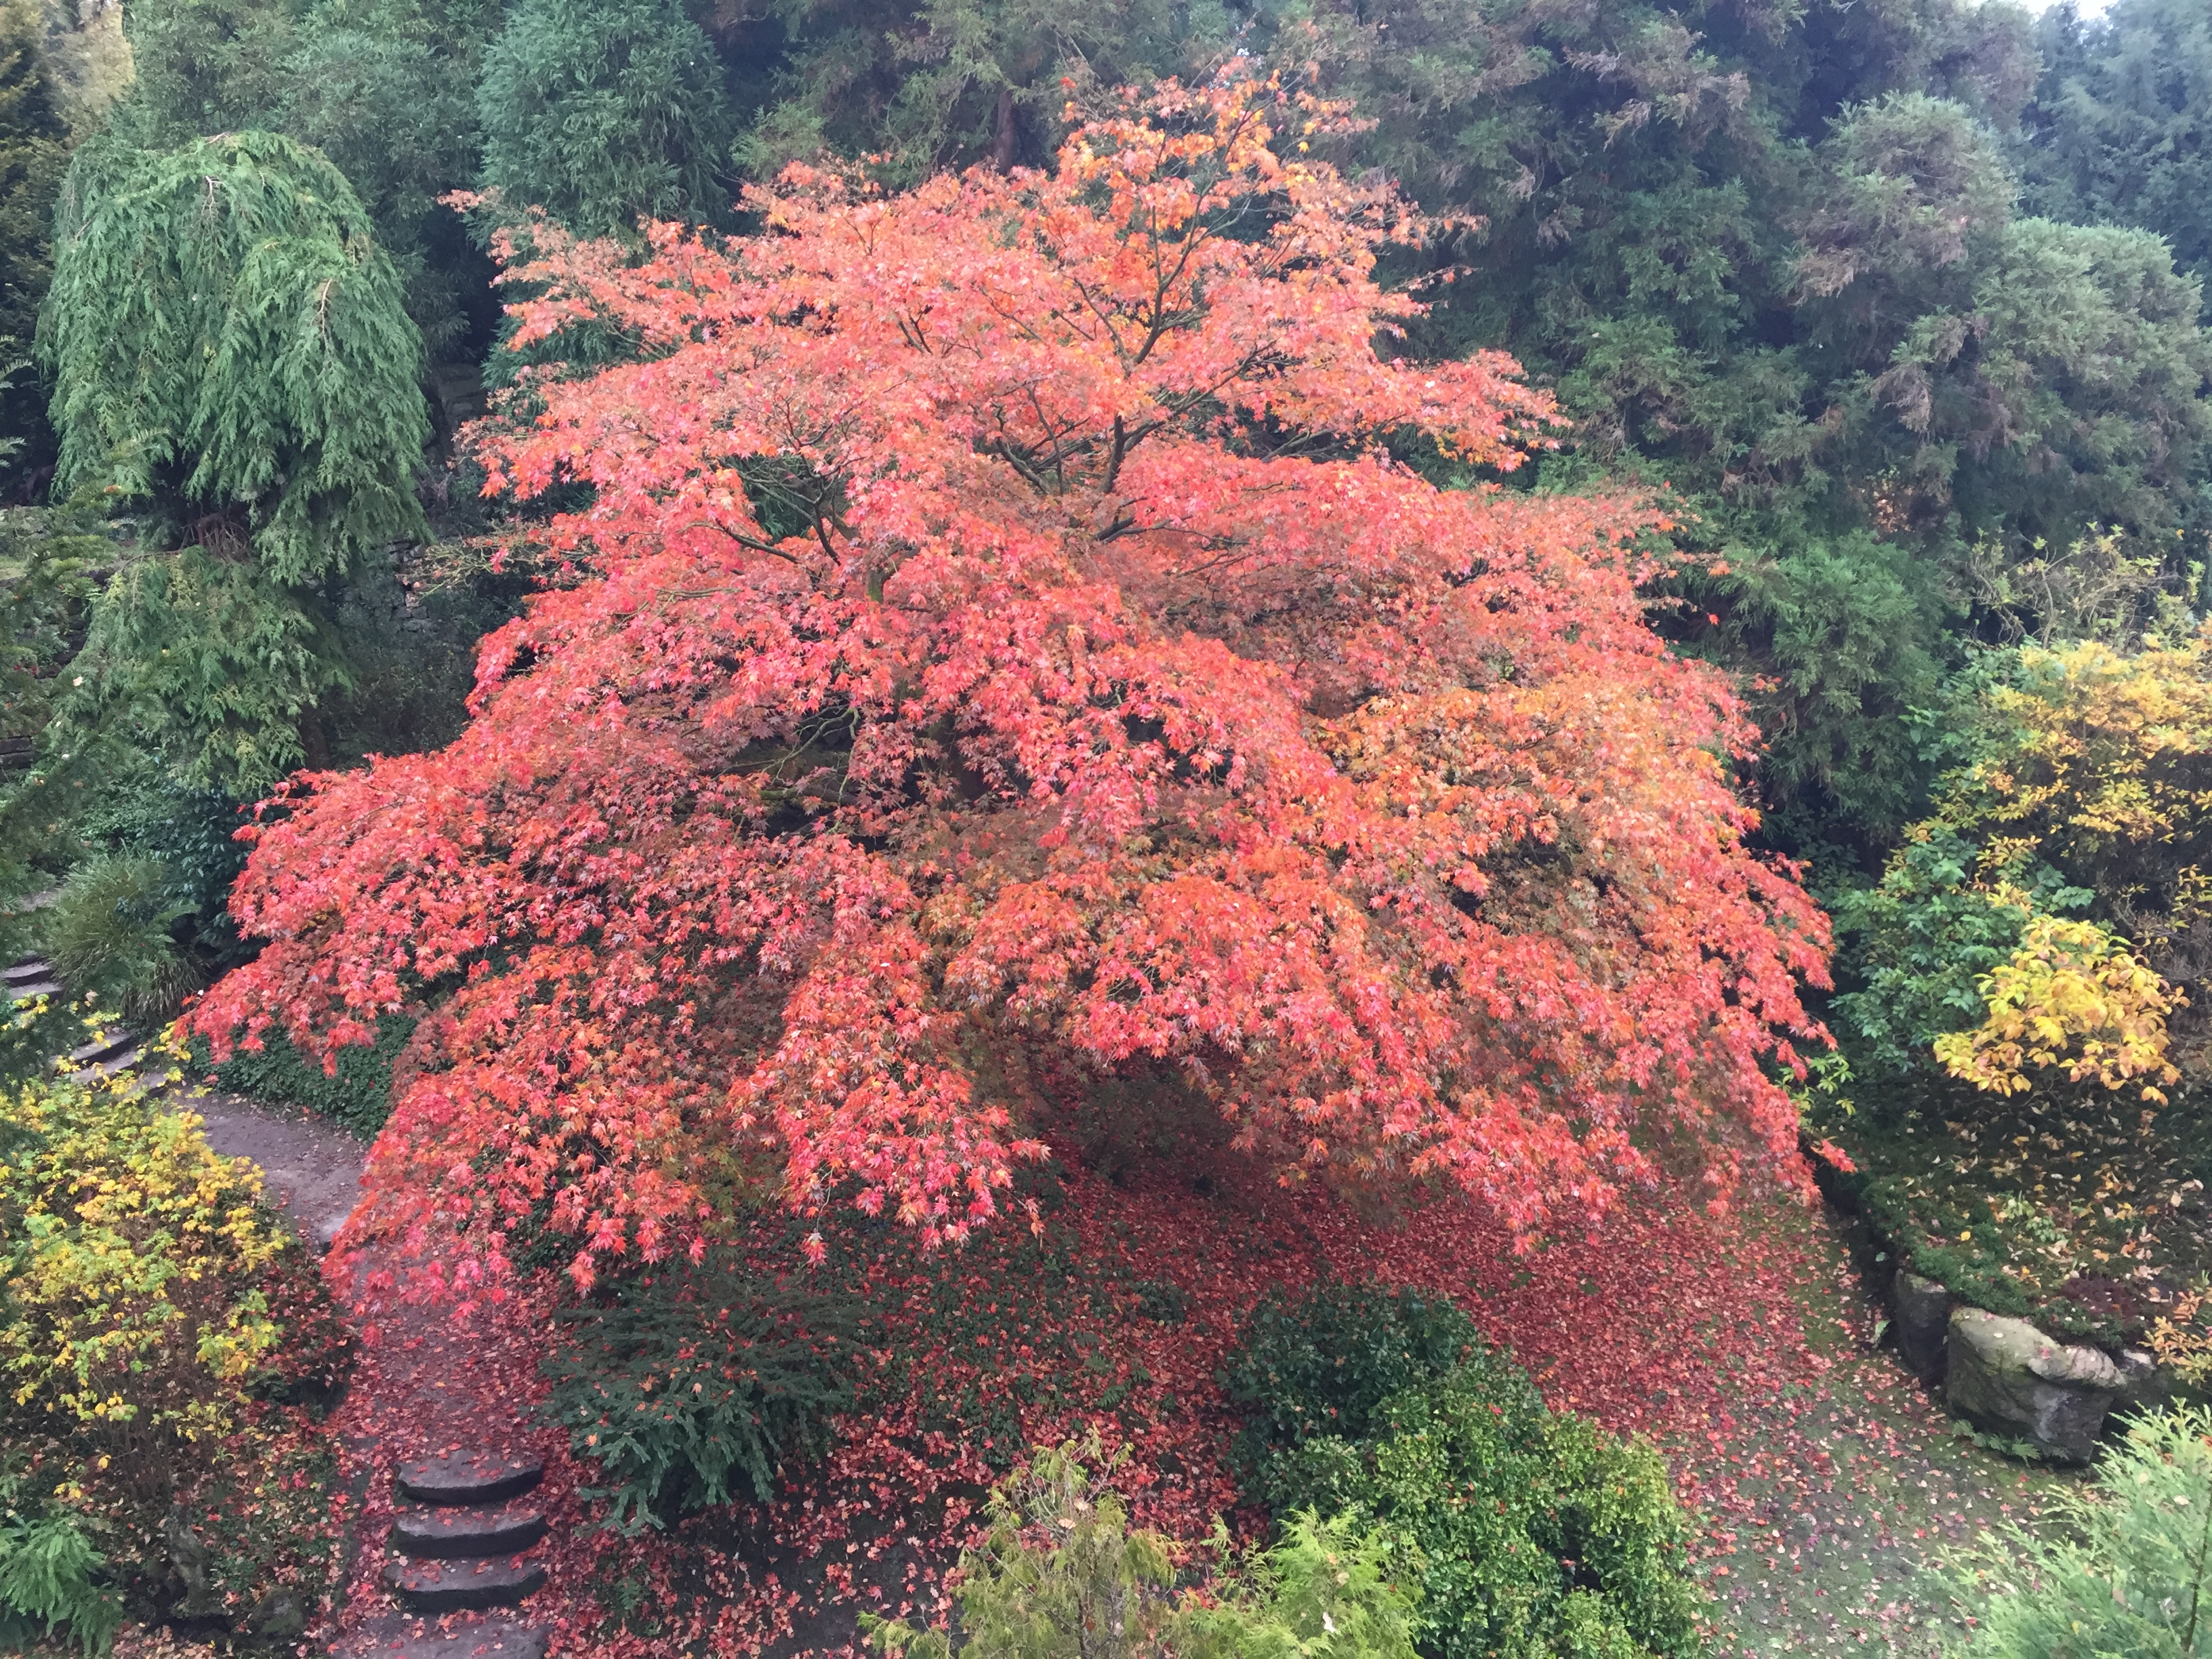 Japanese Acer in full autumn foliage